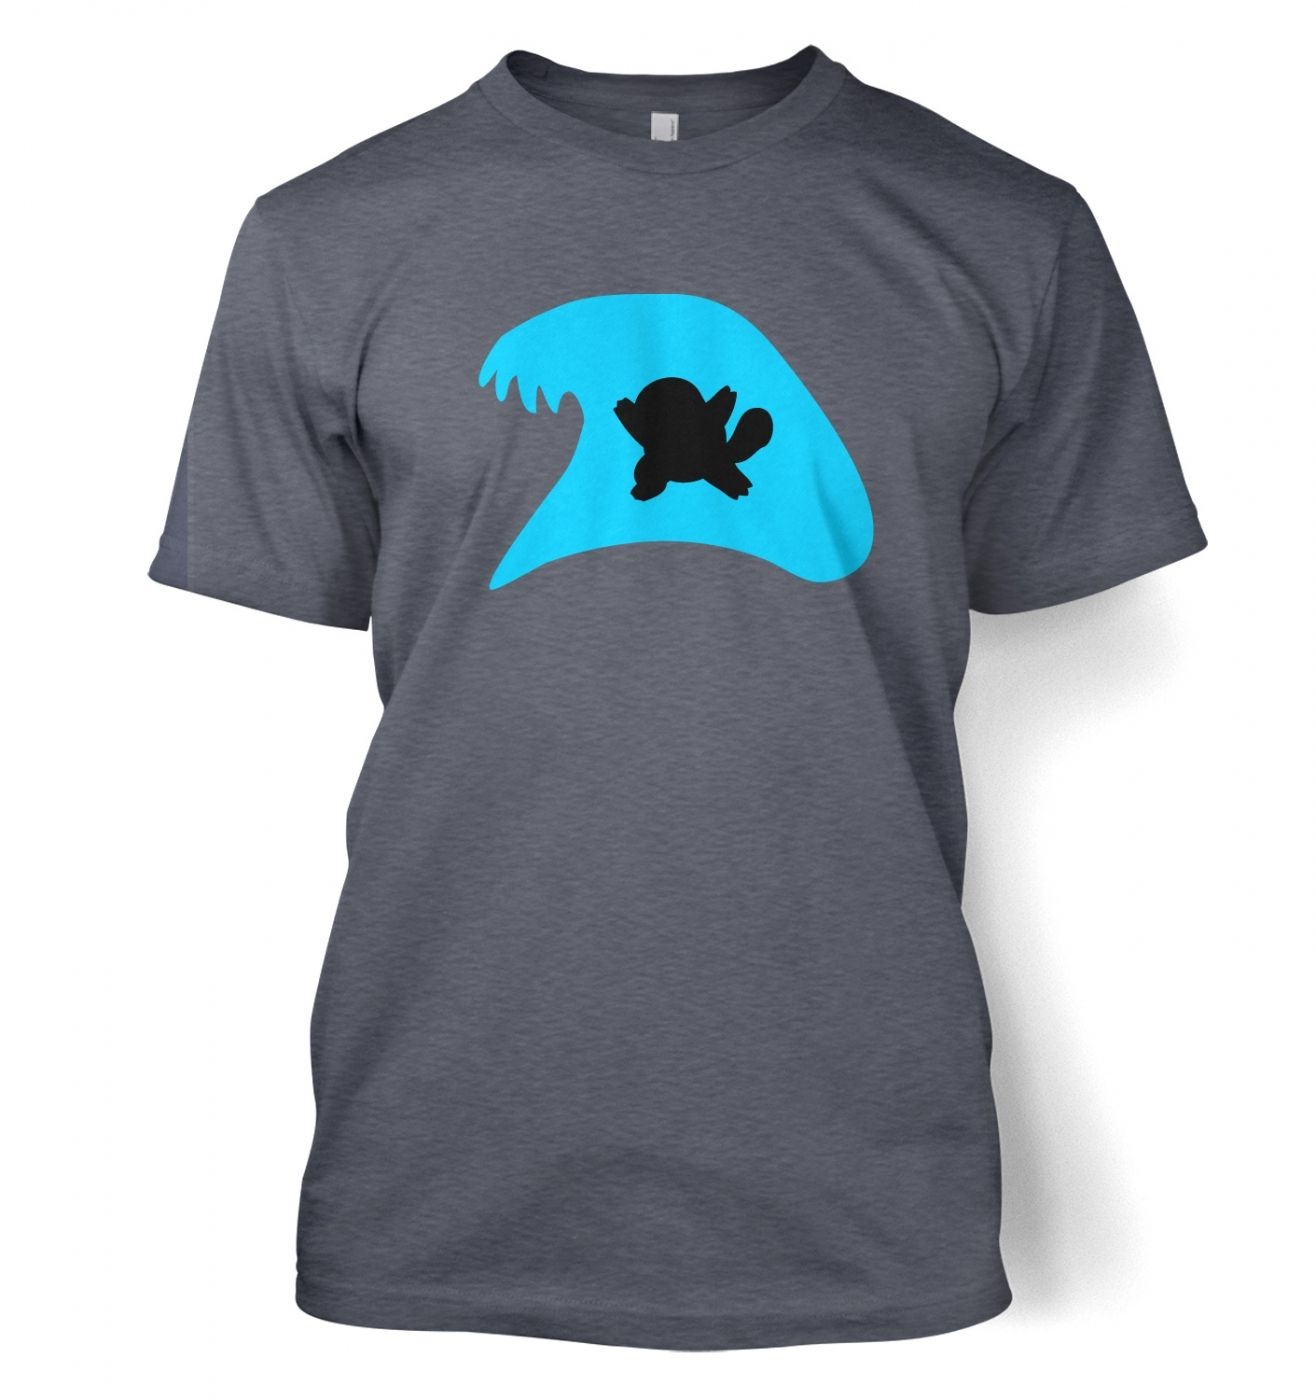 Blue Squirtle Silhouette T-Shirt - Inspired by Pokemon